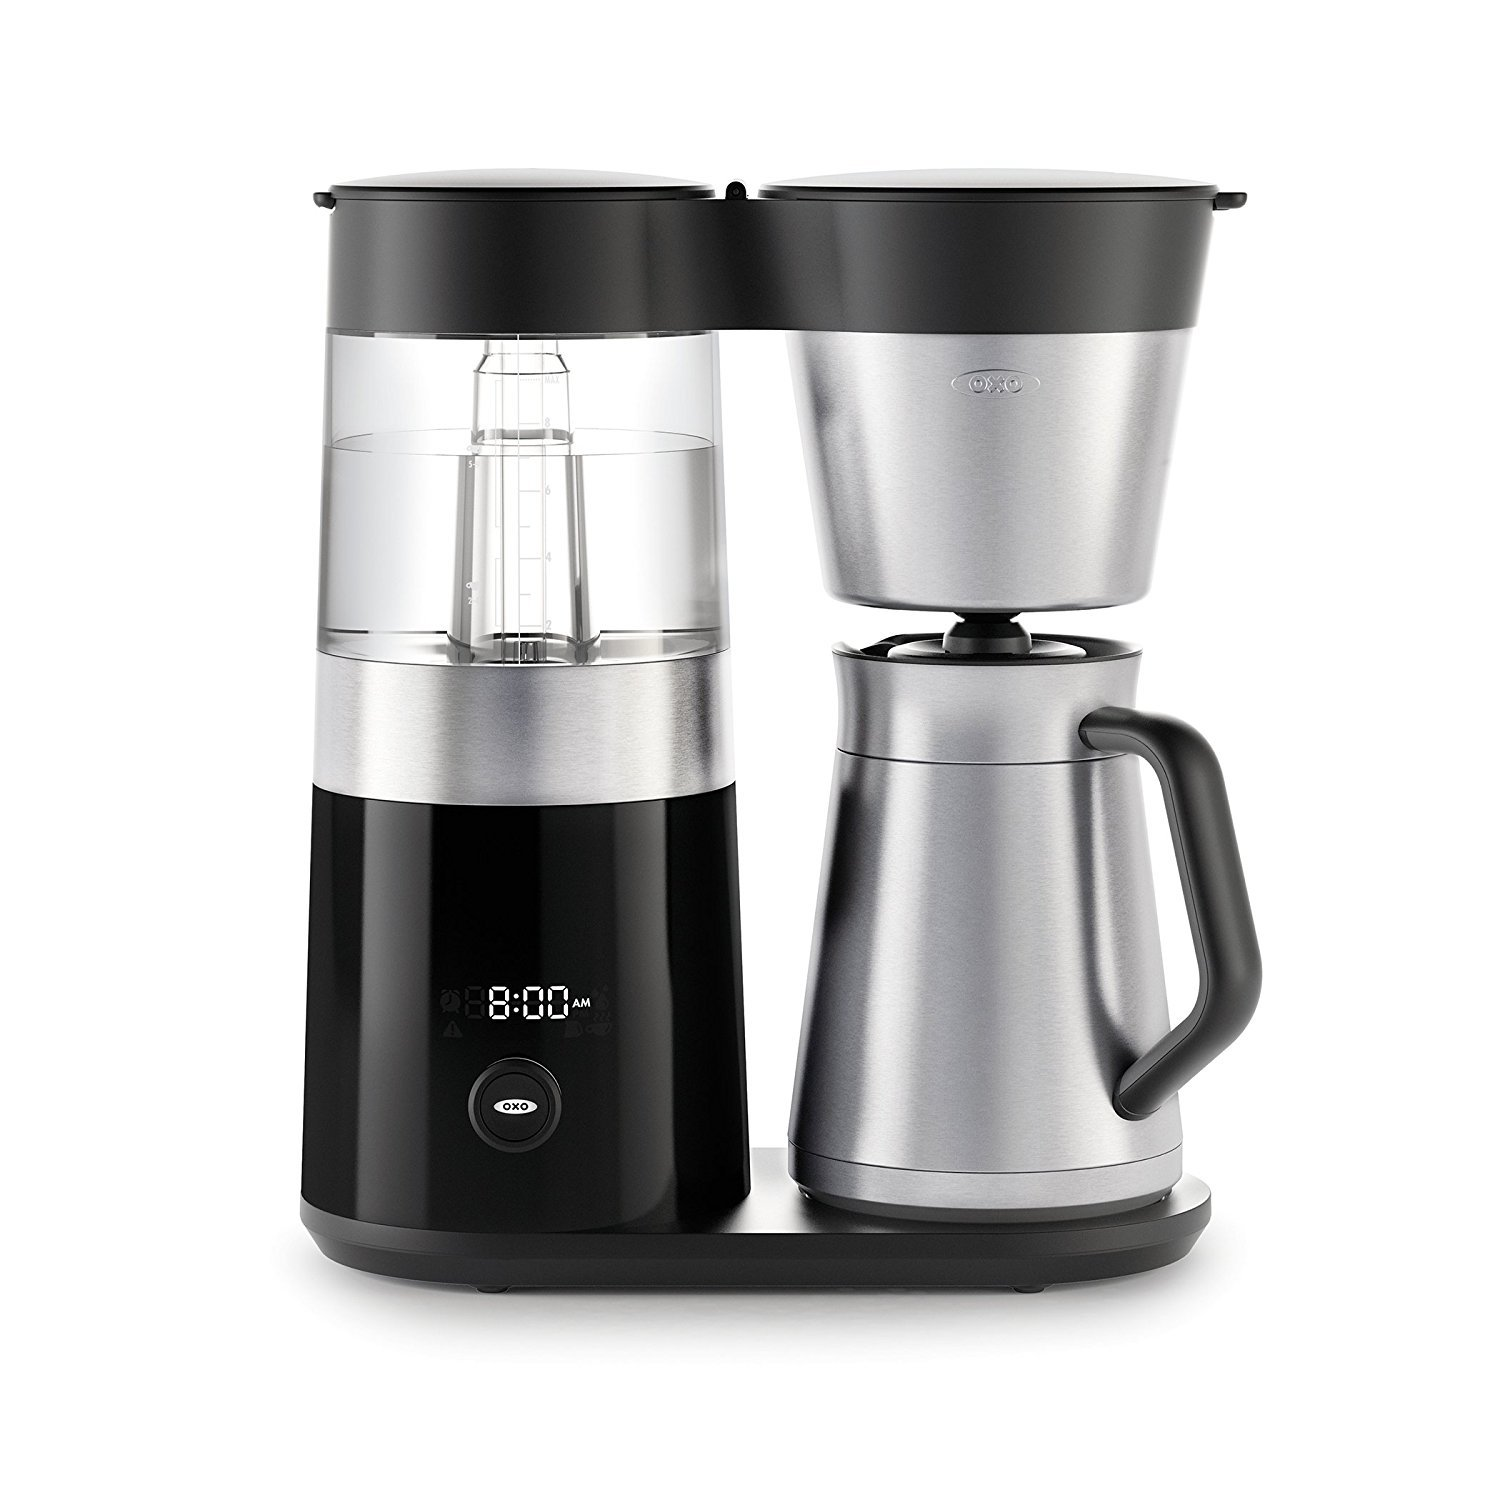 OXO On Barista Brain 9 Cup Coffee Maker by OXO